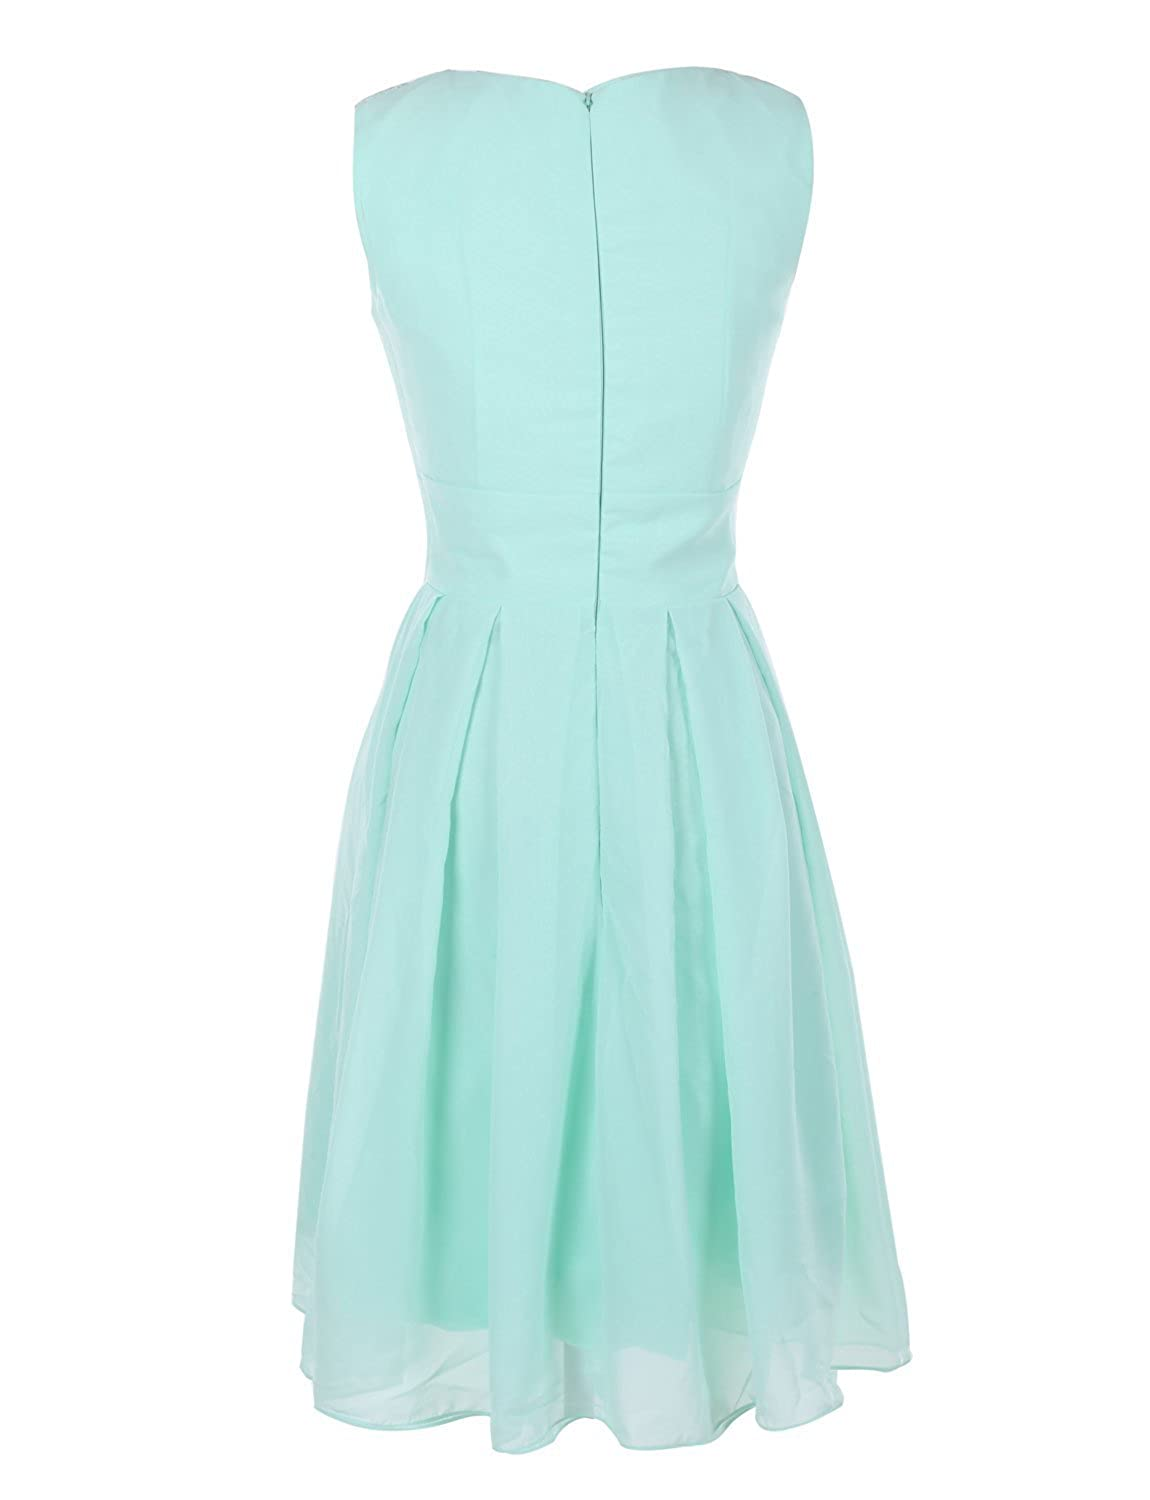 Ouman Short Prom Dress Bridesmaid Gowns with Appliques Neckline at ...